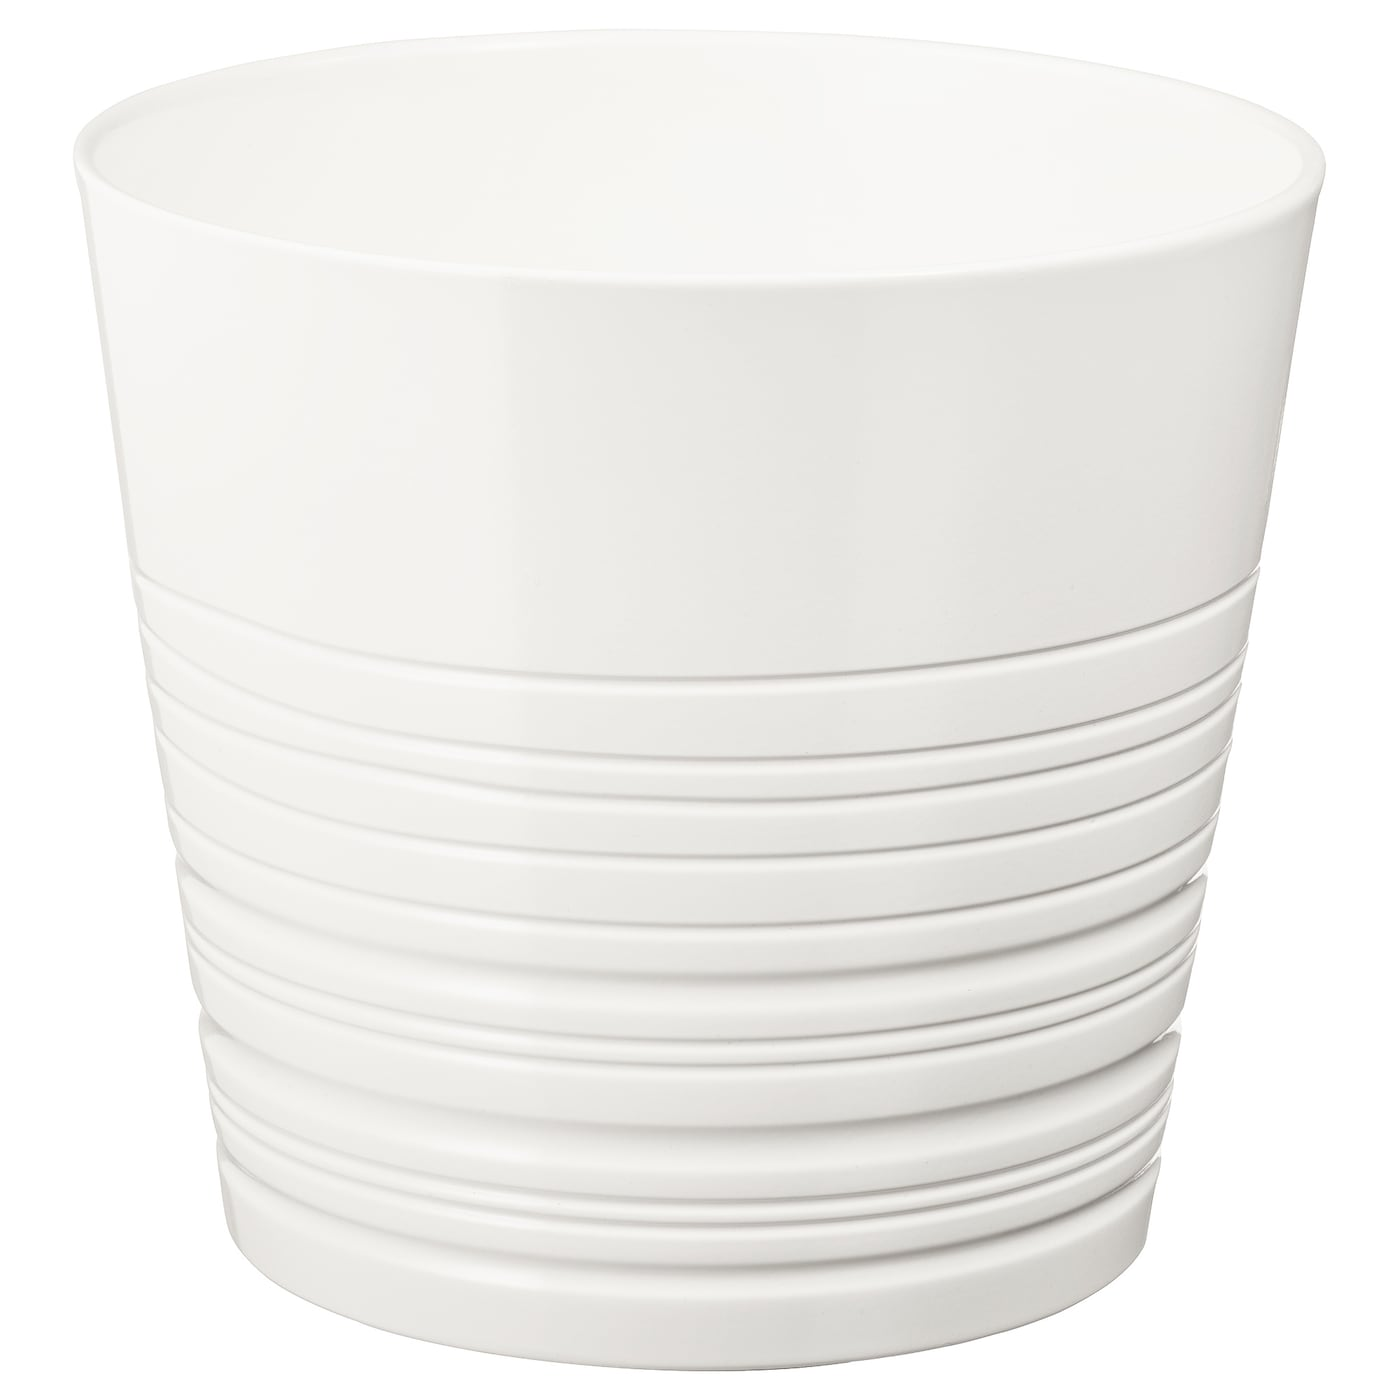 IKEA MUSKOT plant pot Decorate your home with plants combined with a plant pot to suit your style.